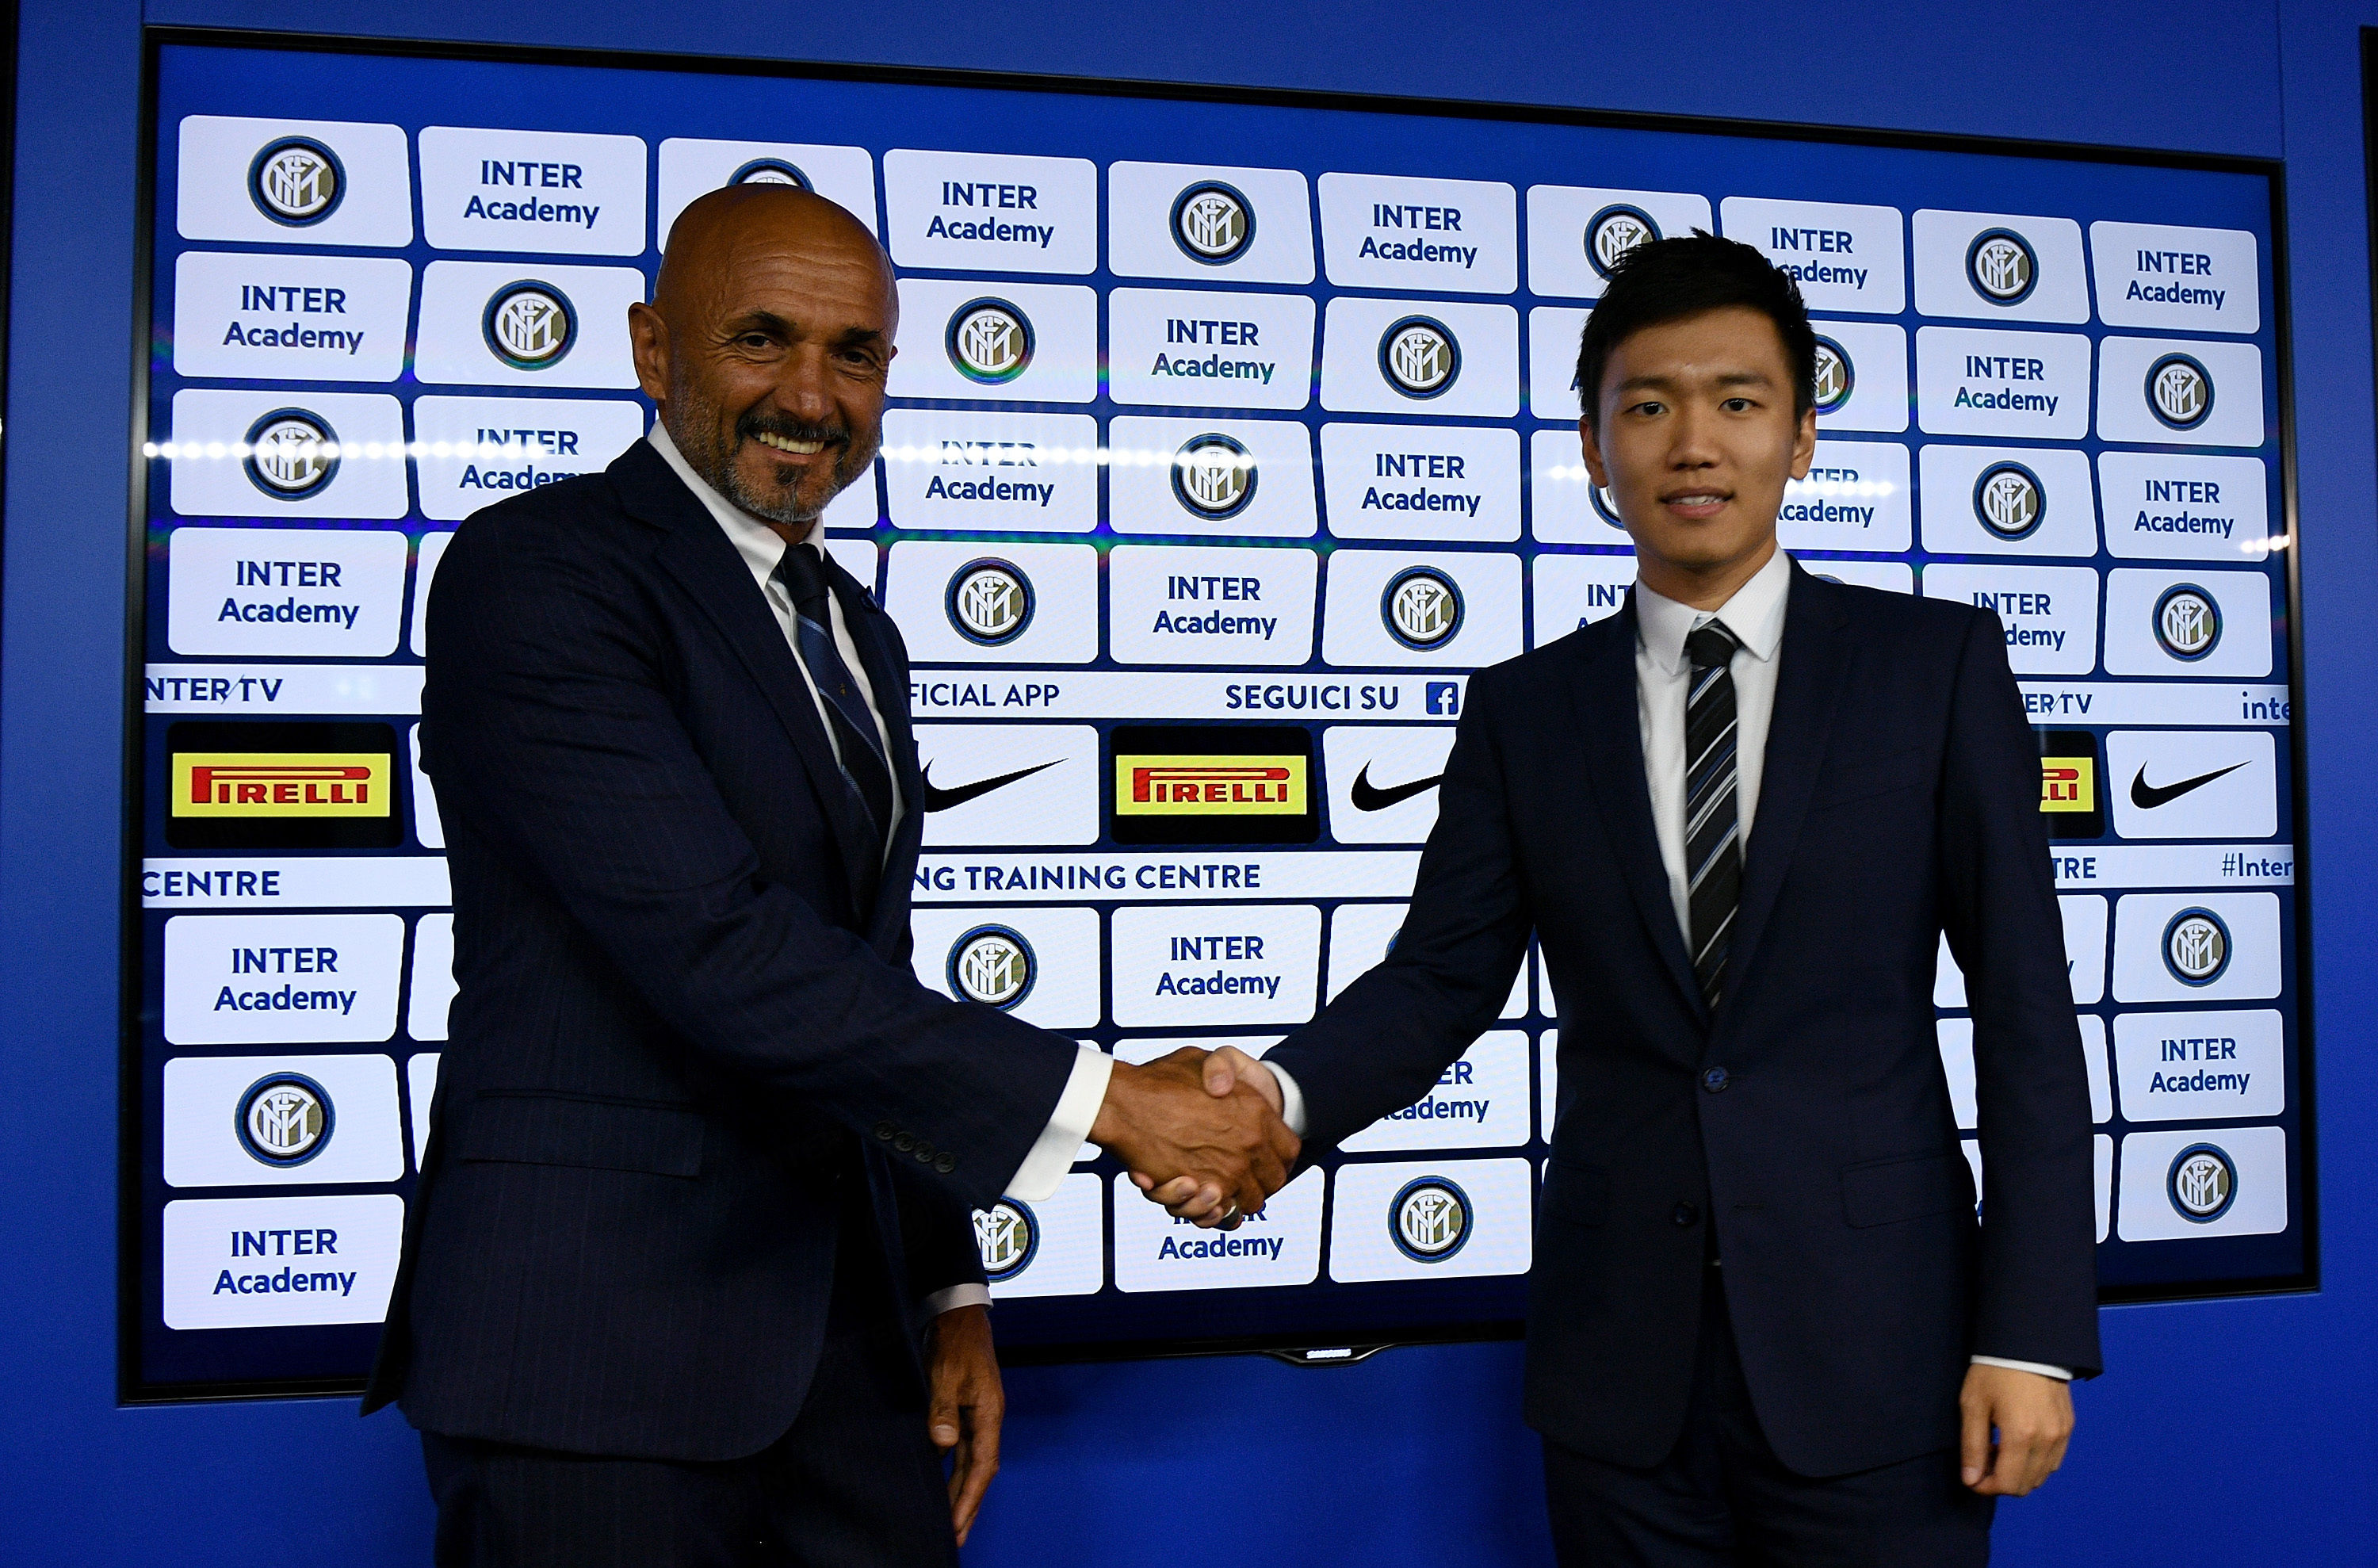 Luciano Spalletti extends Inter contract to 2021!